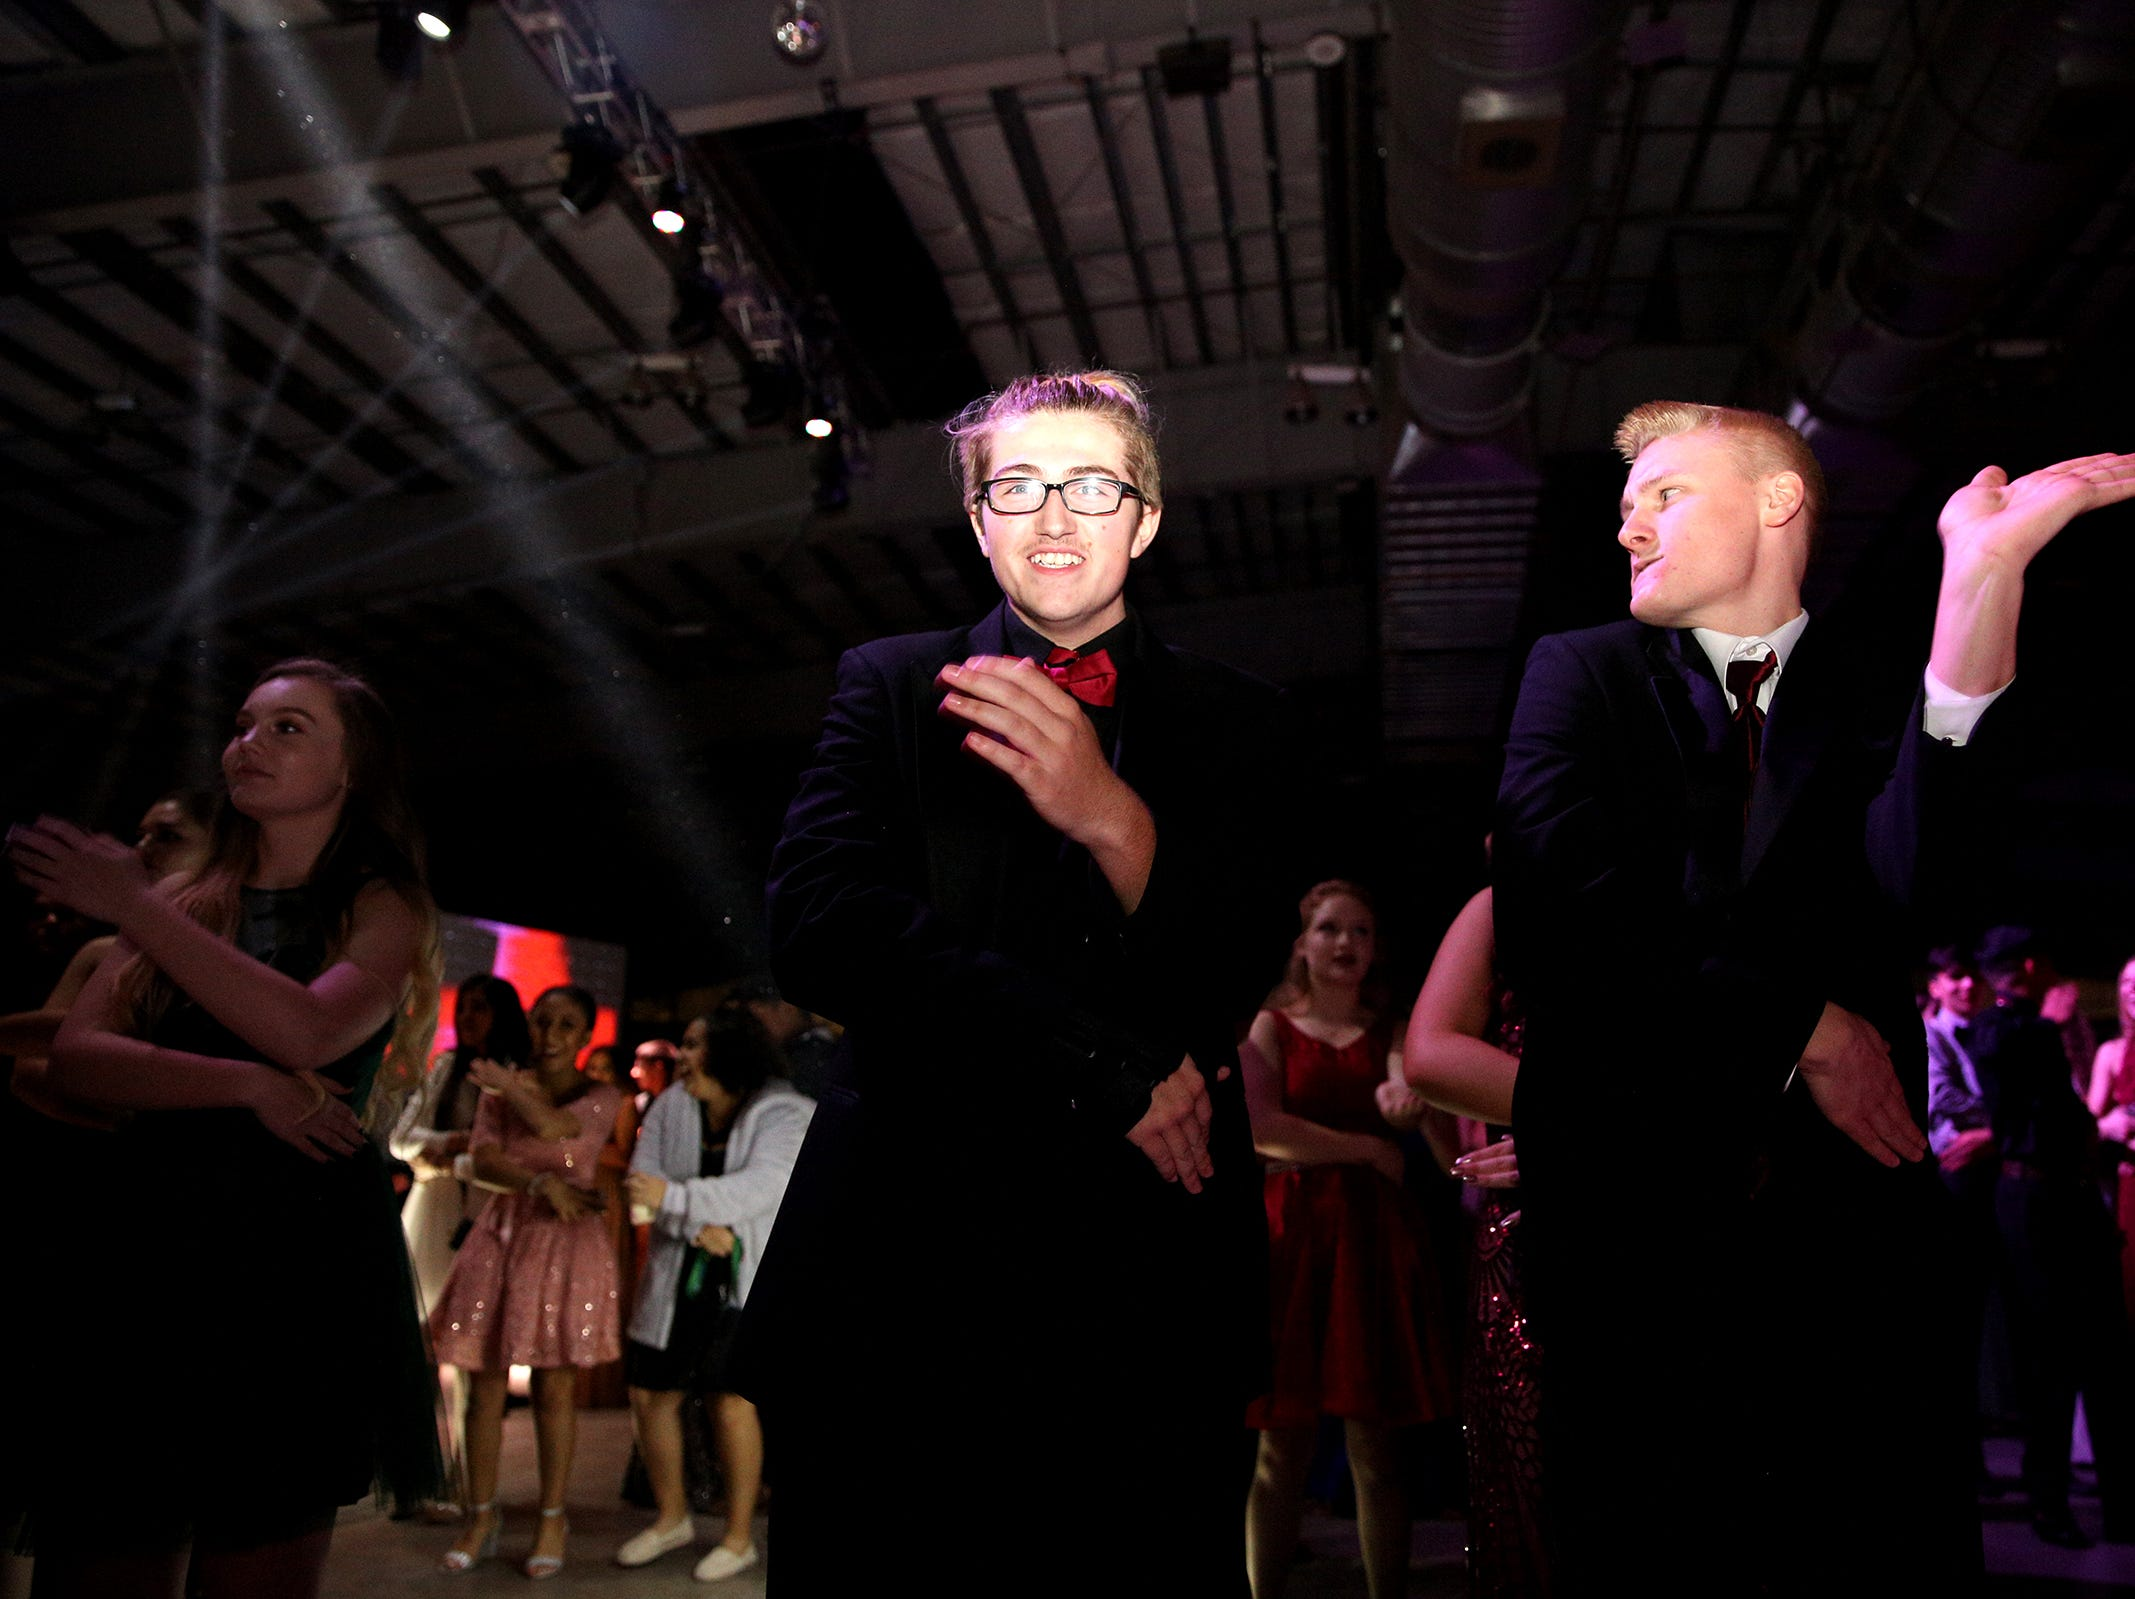 McKay juniors Mathew Lang and Caleb Parksion dance during the annual SnoBall at the Oregon State Fairgrounds Pavilion in Salem on Saturday, Dec. 1, 2018.